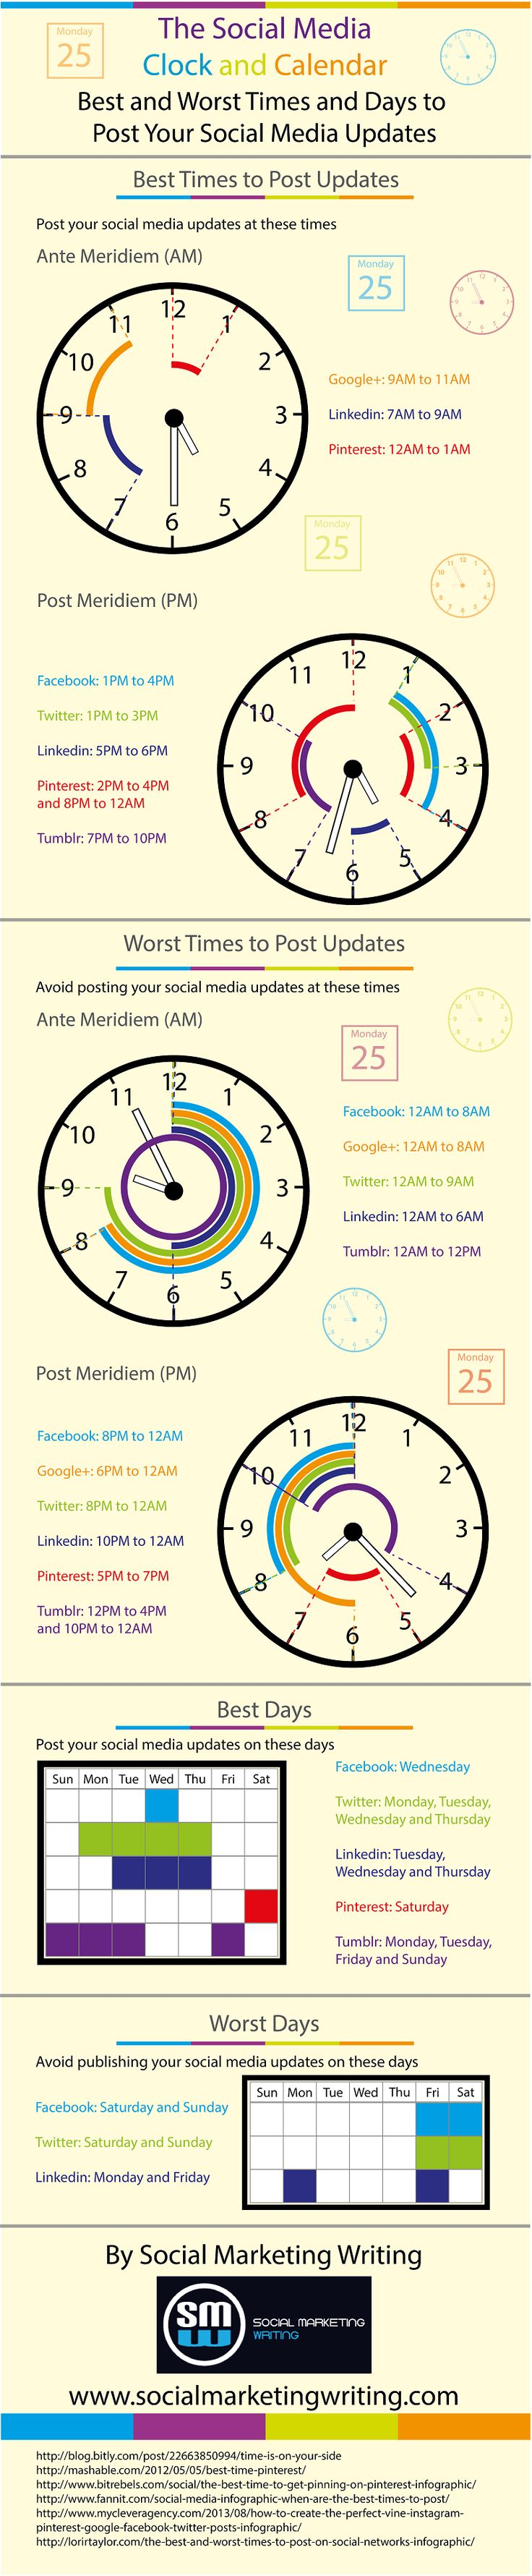 Best and Worst Times and Days to Post Your Social Media Updates [Infographic]